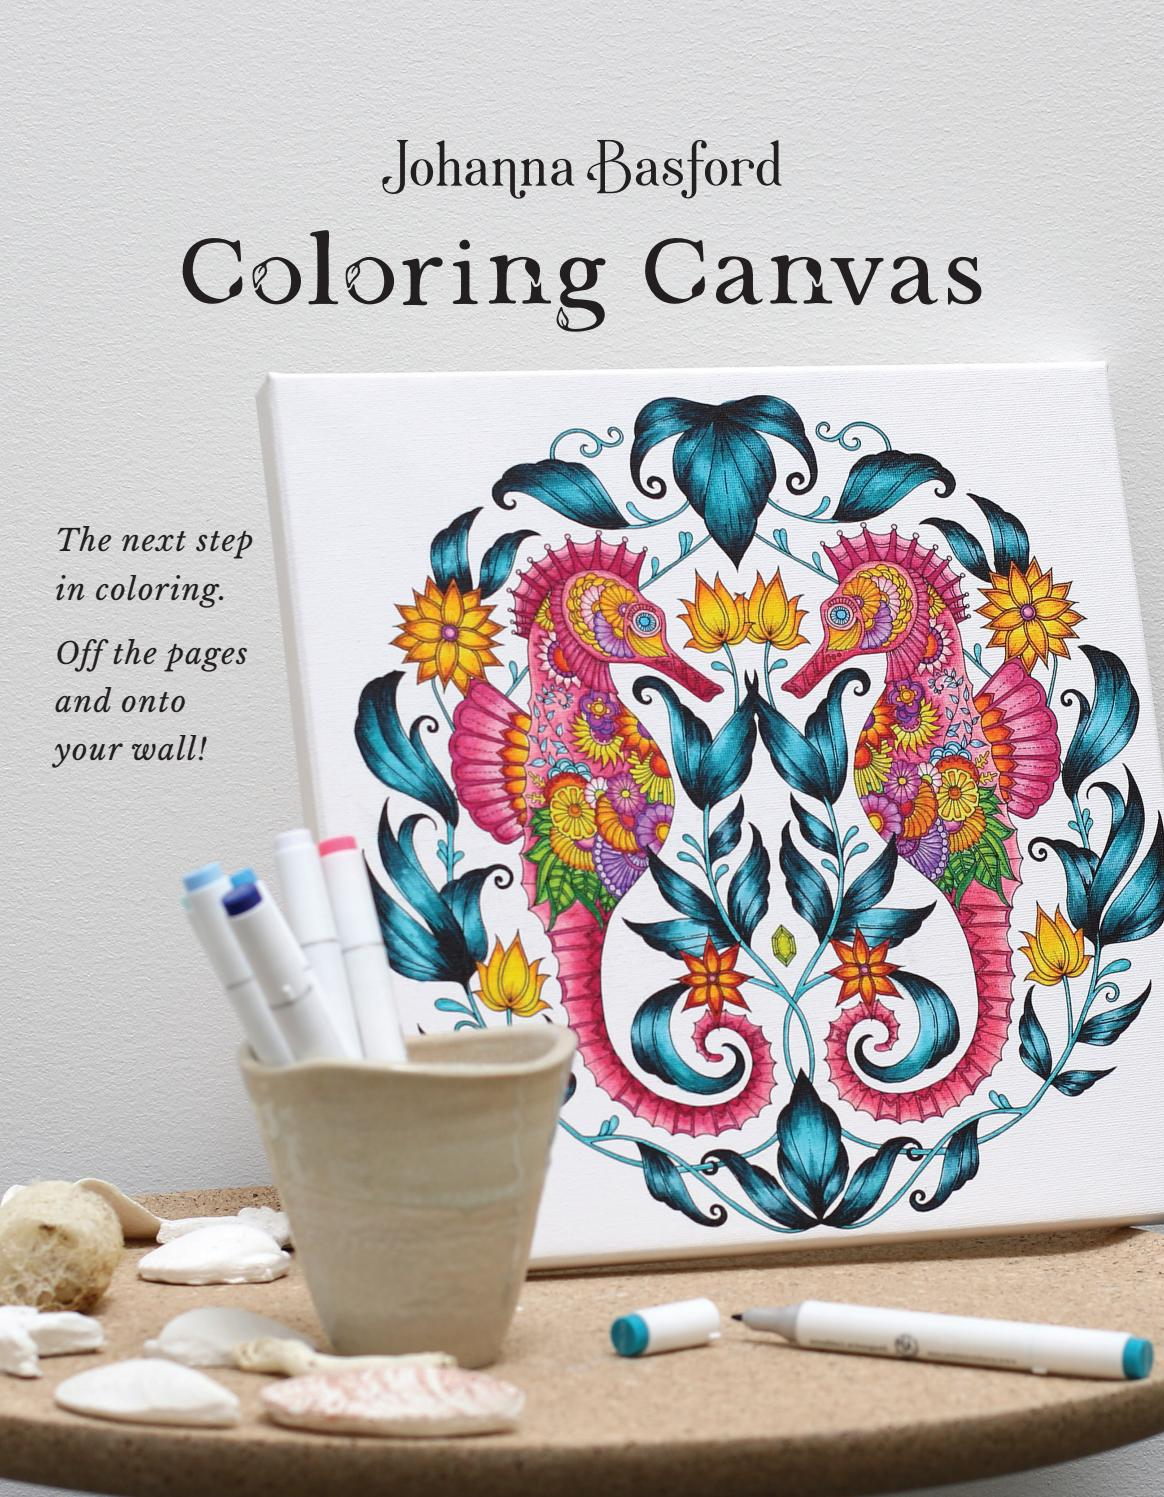 Johanna Basford Coloring Canvas guide by MacPherson\'s - issuu